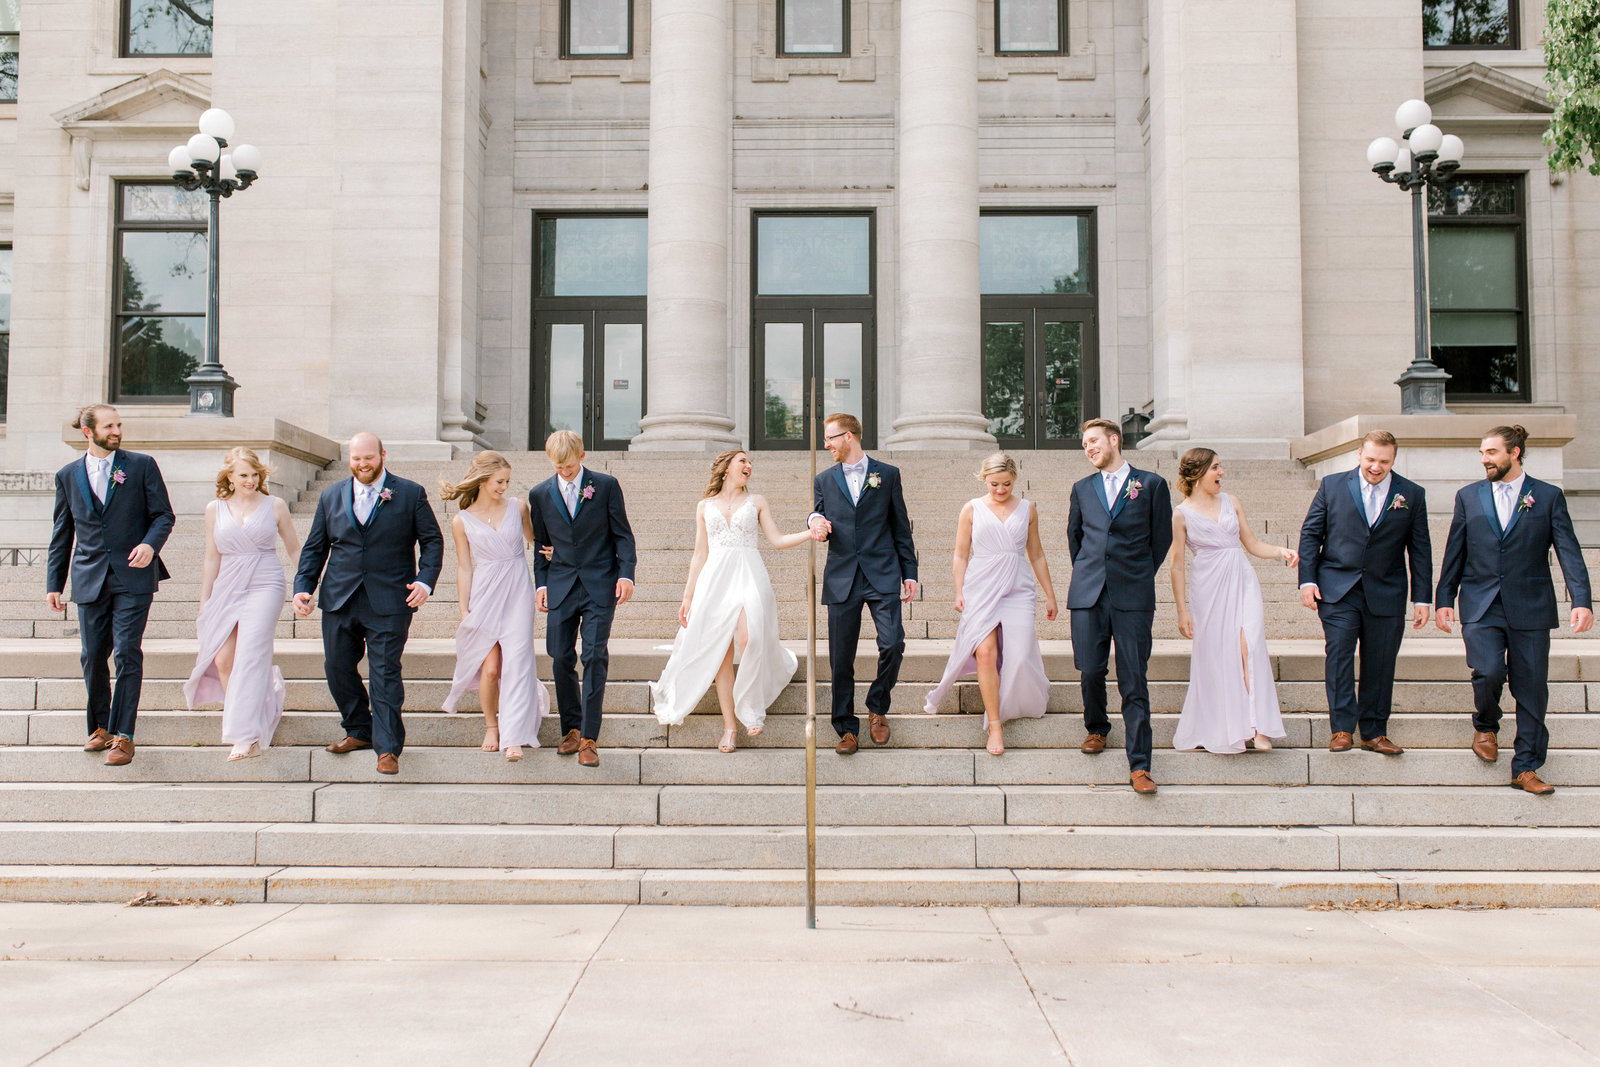 St-francis-of-assisi-west-des-moines-summer-wedding-erica-blake-7756